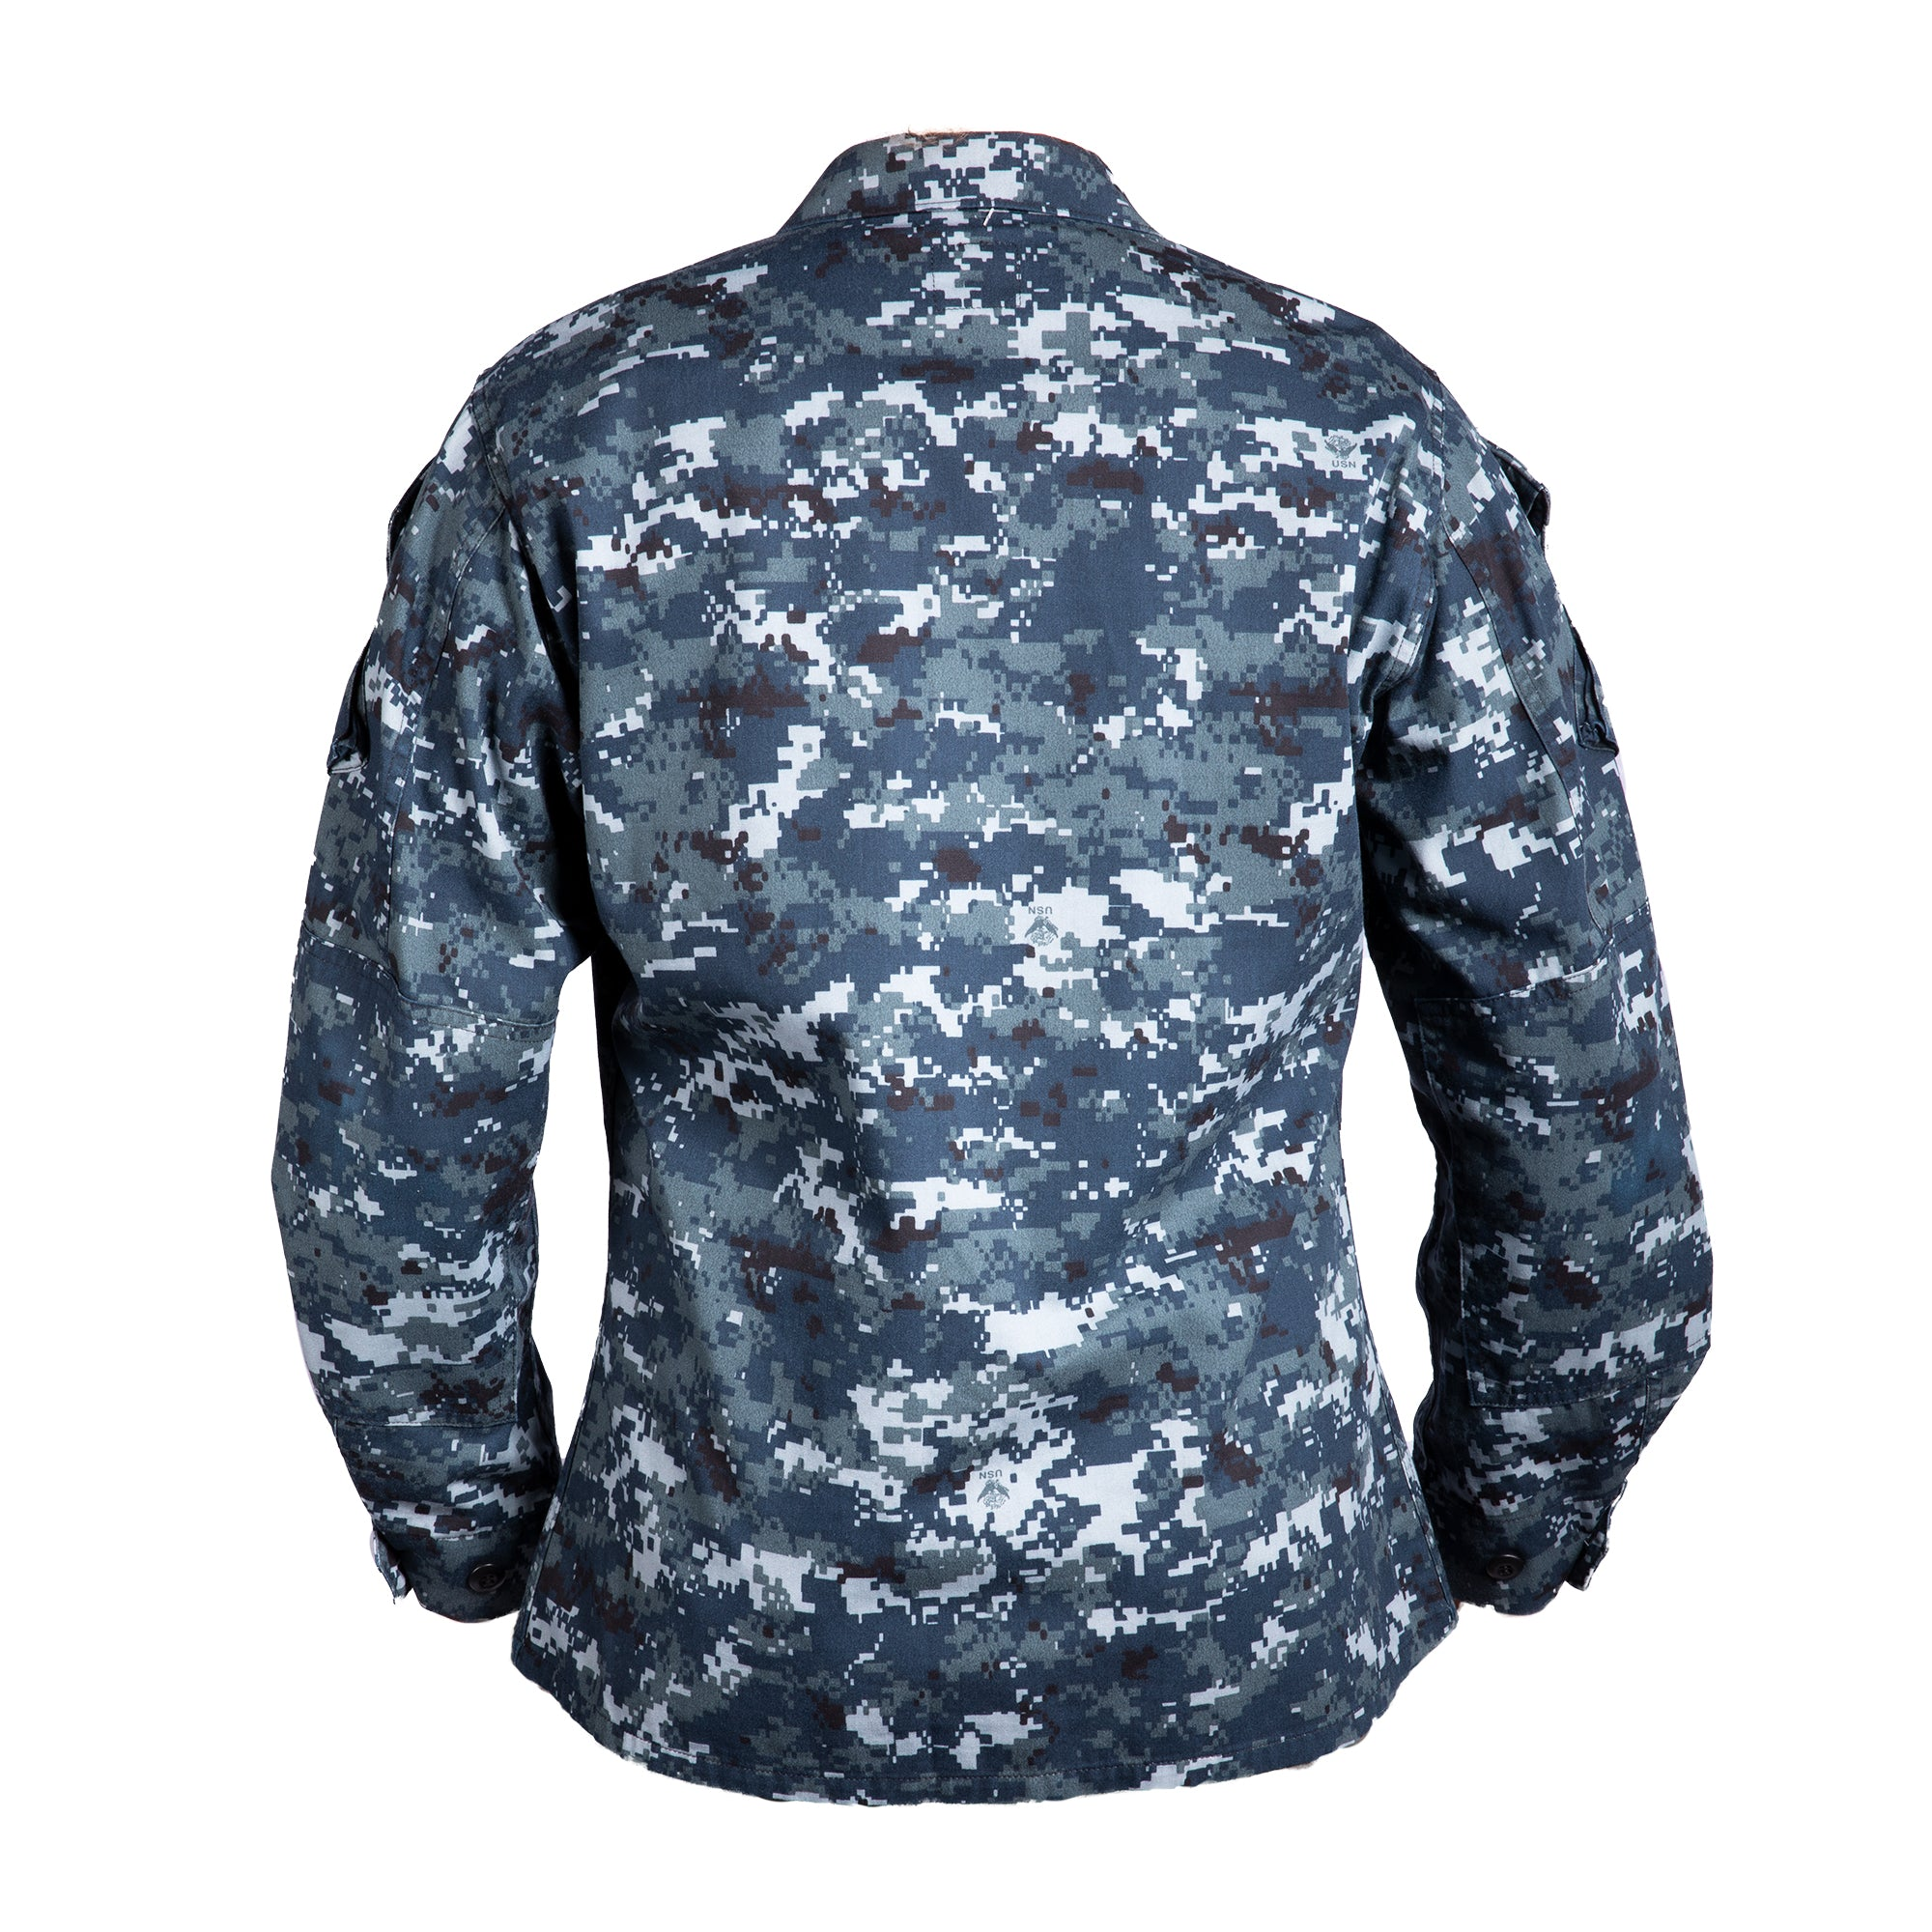 1 Jacket  Blouse All Sizes Pre-owned Military Navy Uniform NWU Type